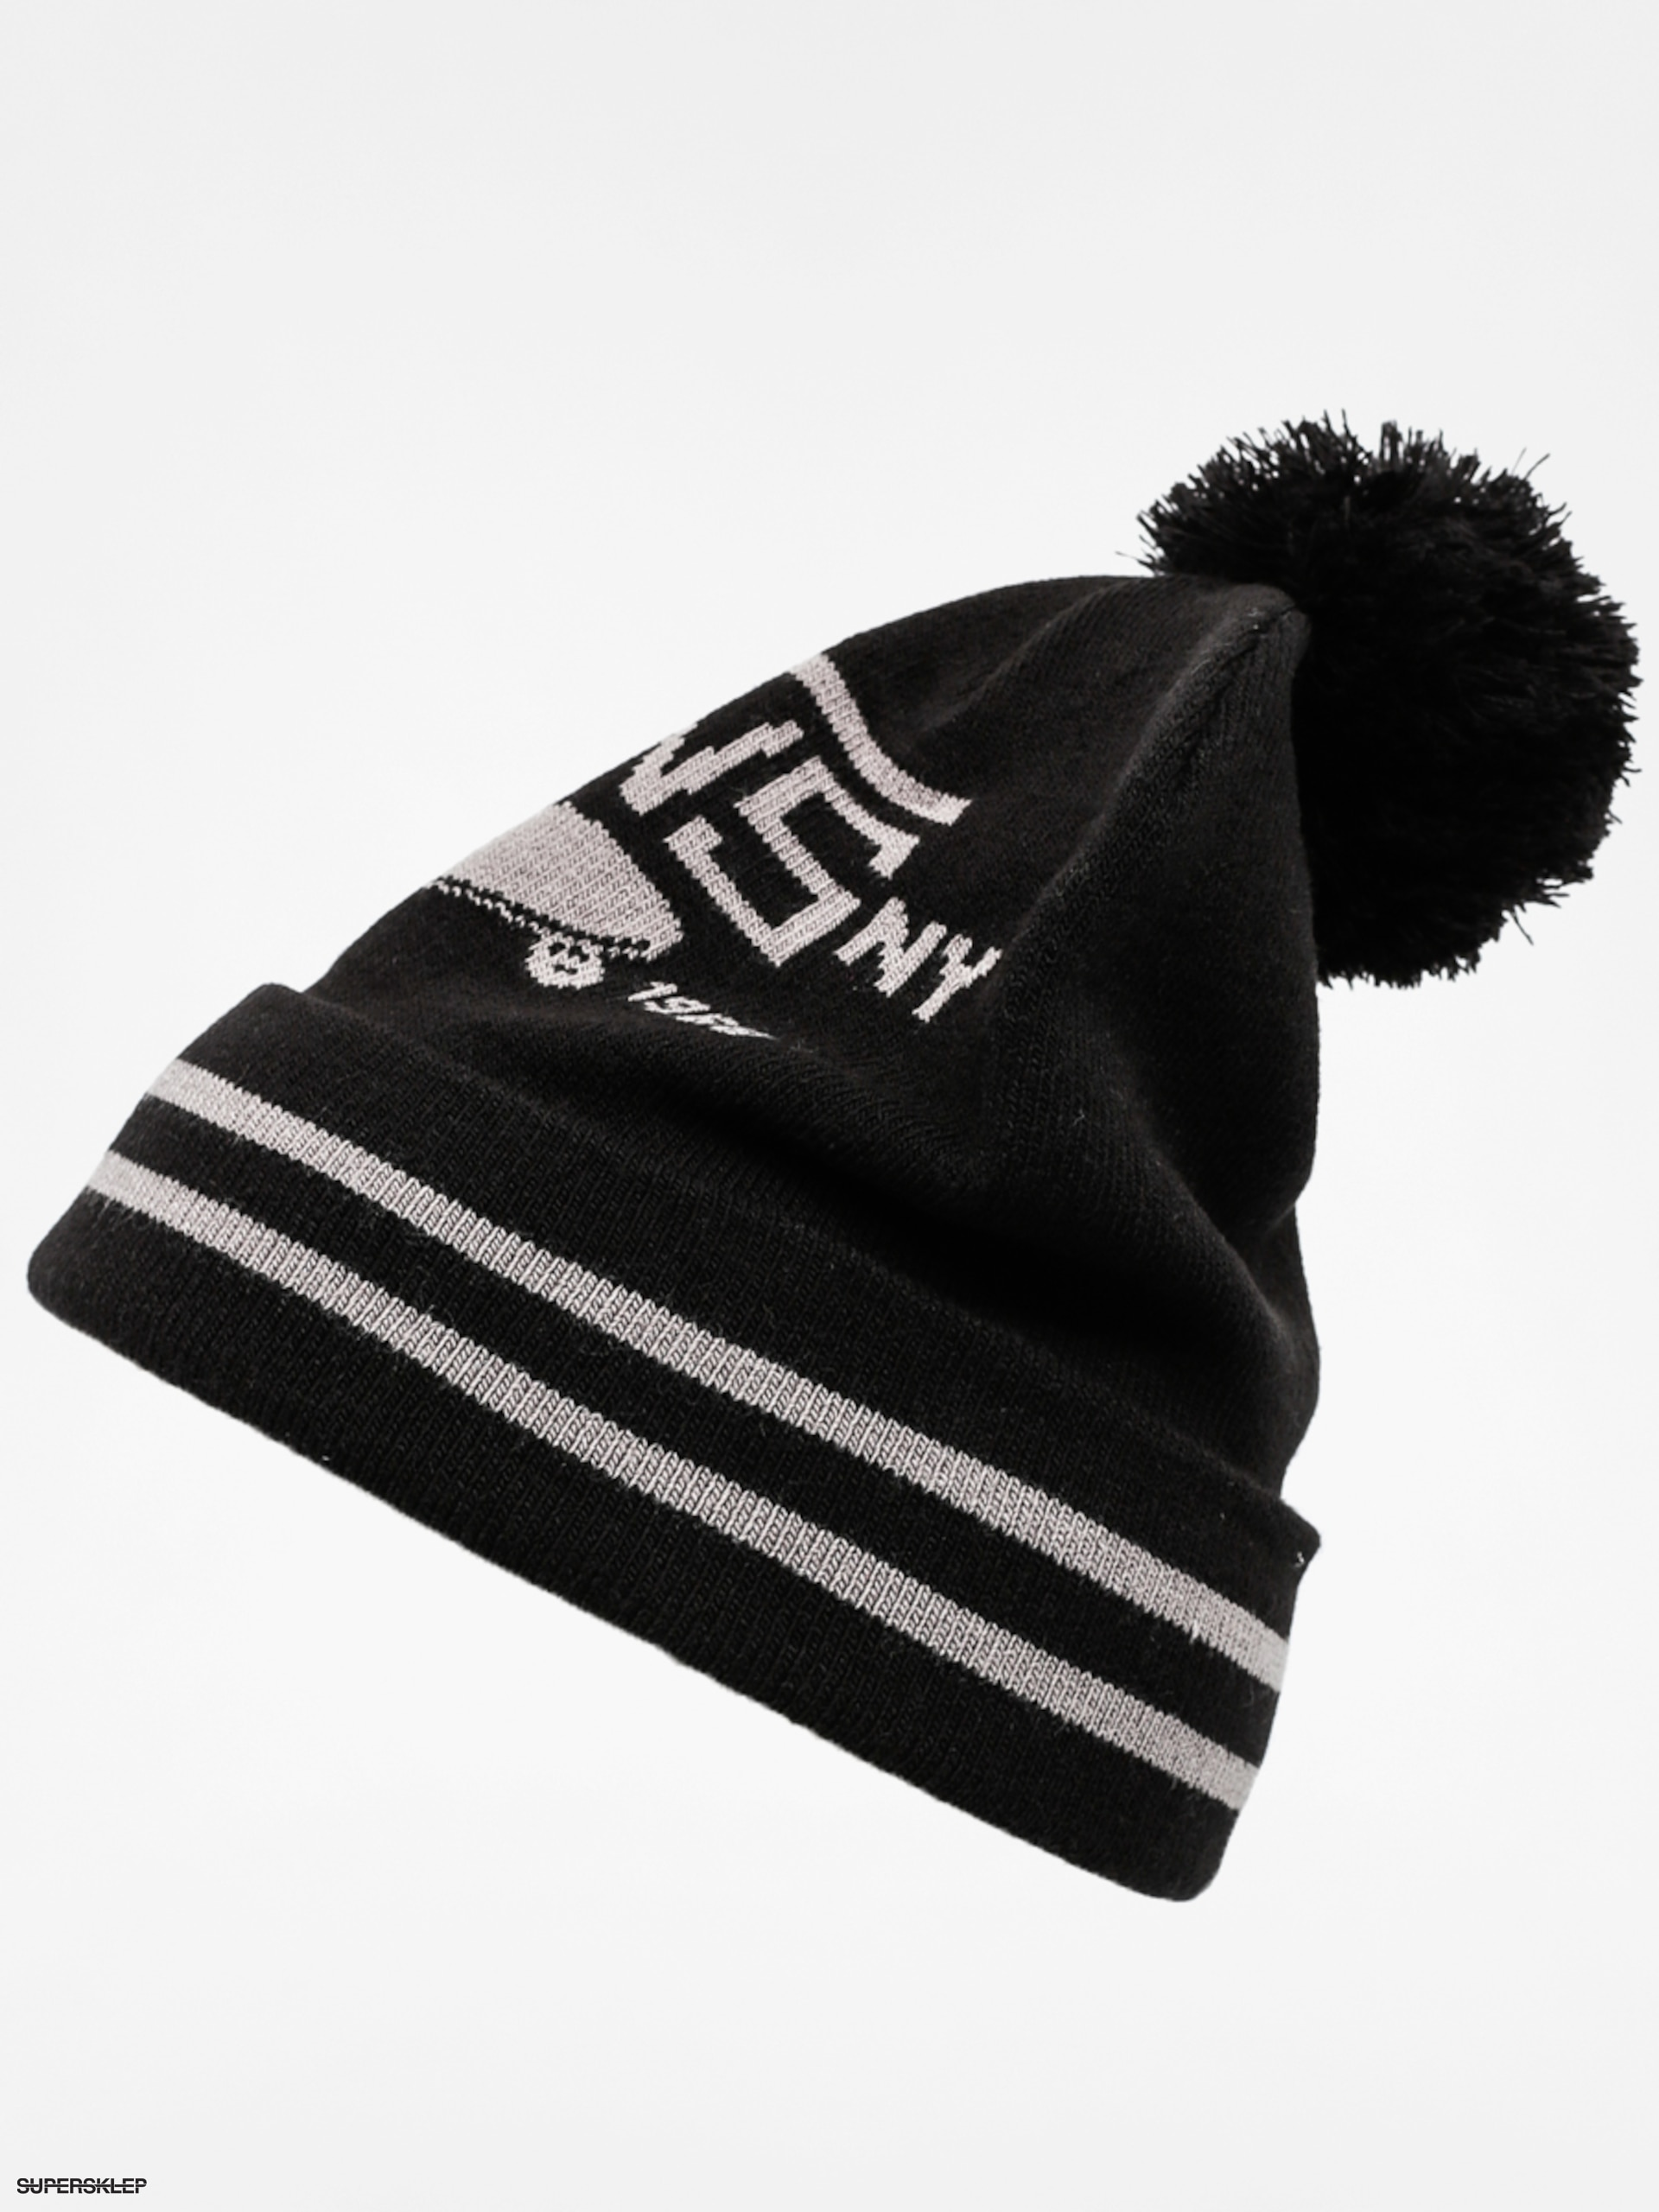 034fe89ce90 Čepice Vans Full Patch II Pom Beanie (black)